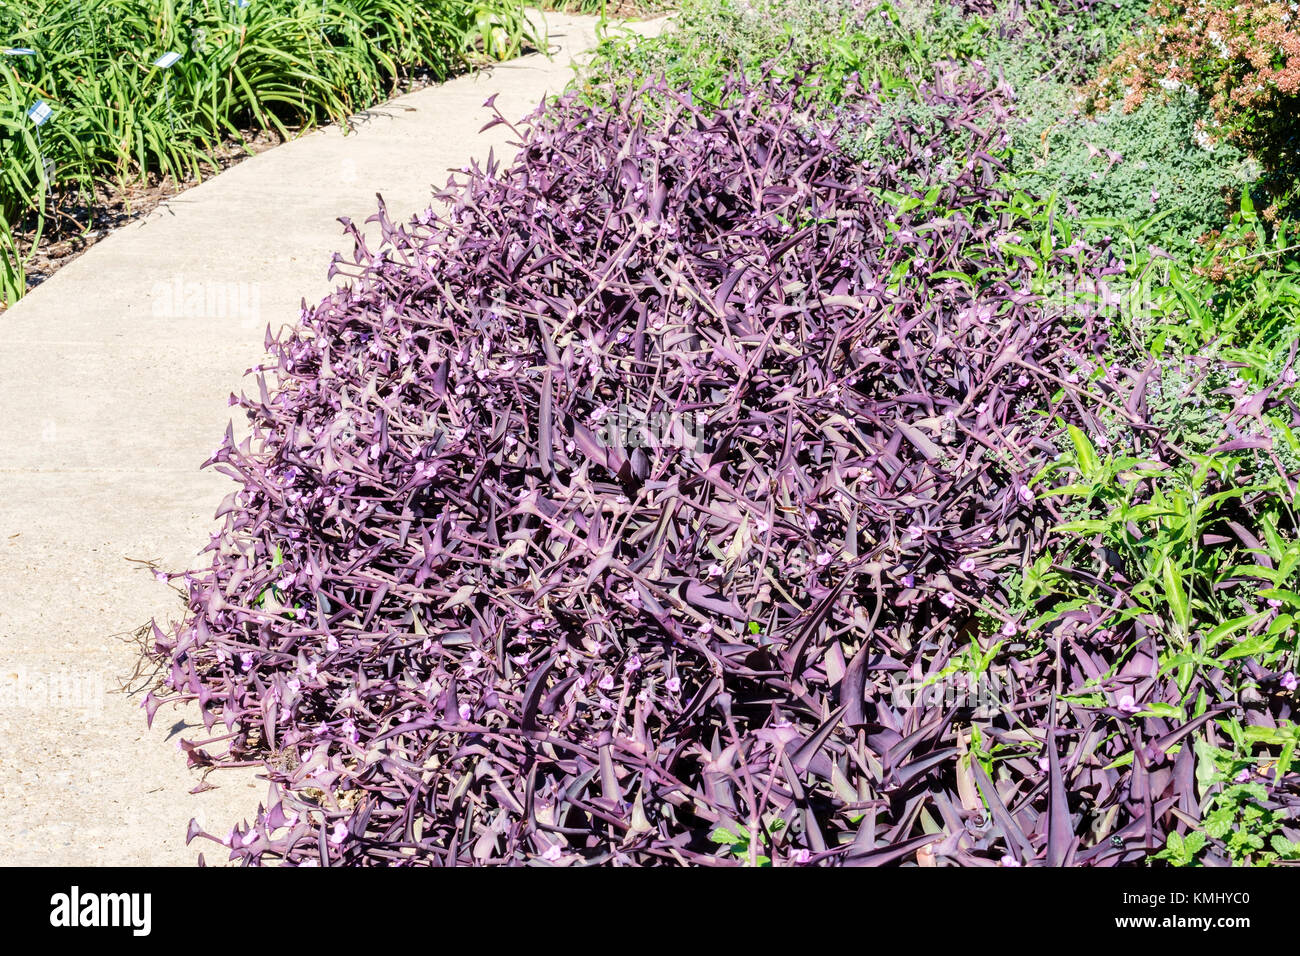 A path through Will Rogers botanical garden showing a bed of Purple Heart flowers, Wandering Jew. Oklahoma City, - Stock Image